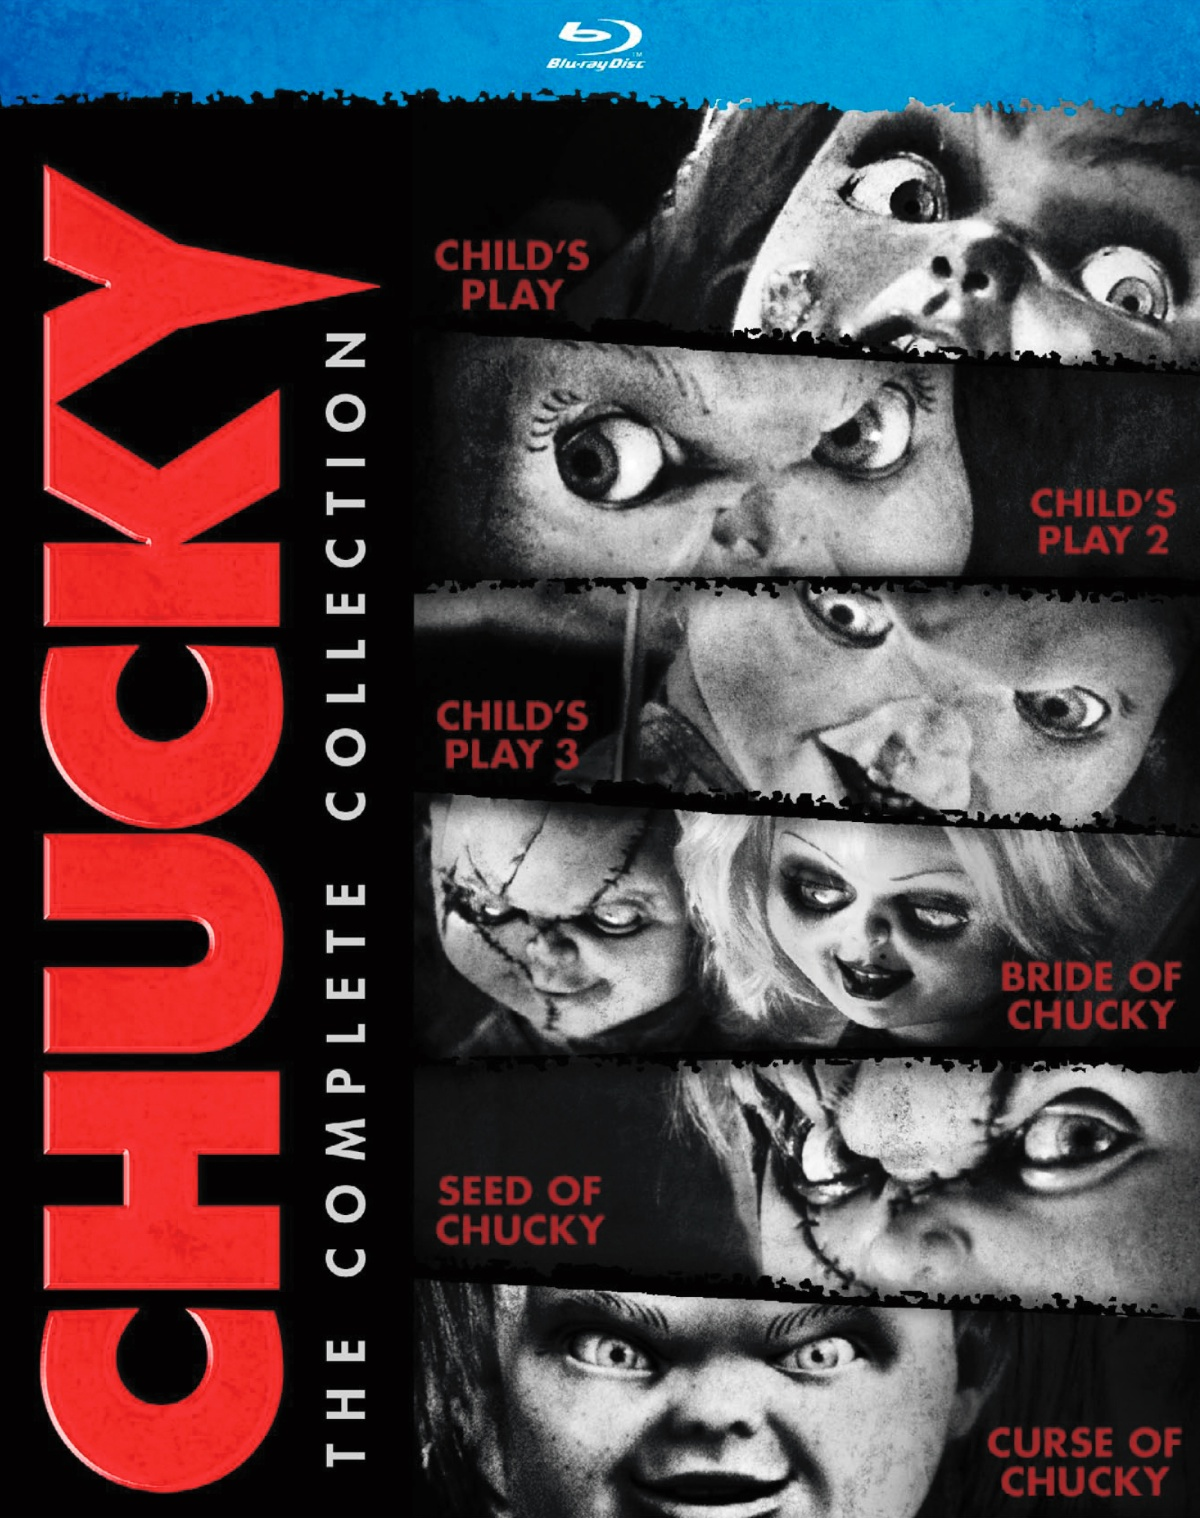 curse of chucky full movie in hindi free download hd